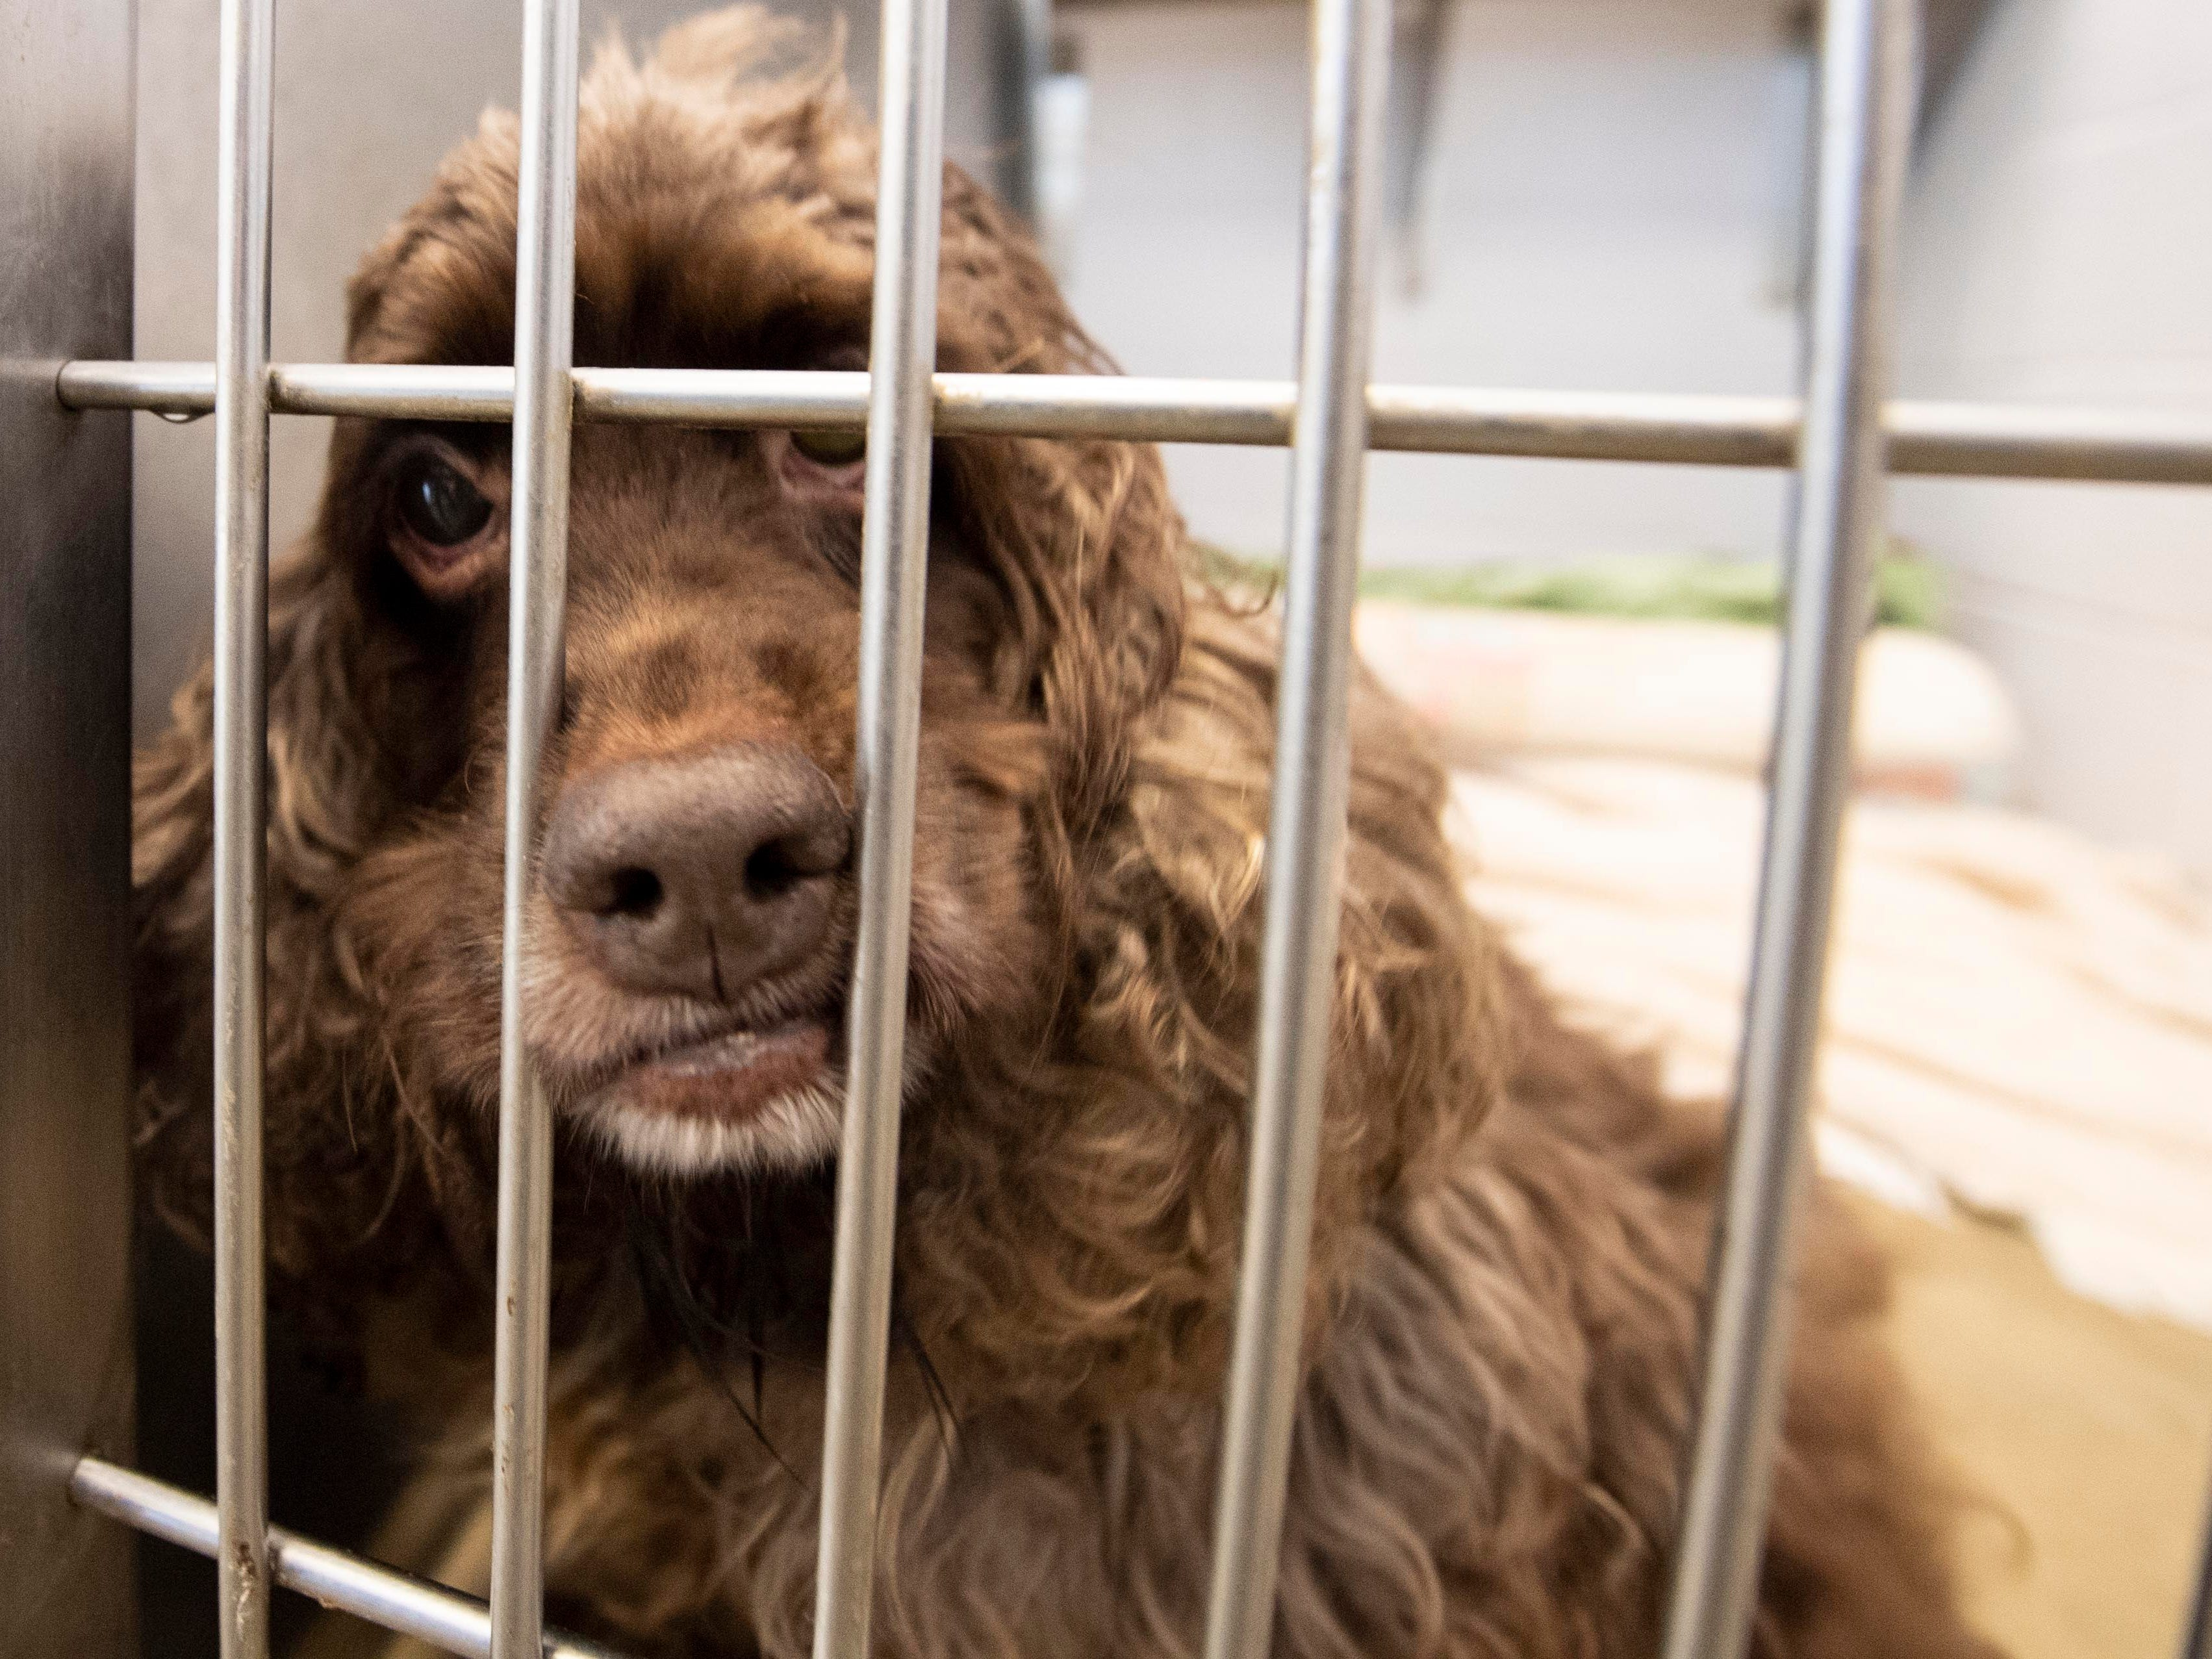 Gracie, a 5-year old cocker spaniel, was brought in because her owner could no longer take care of her. She's one of the shelter's longest residents.